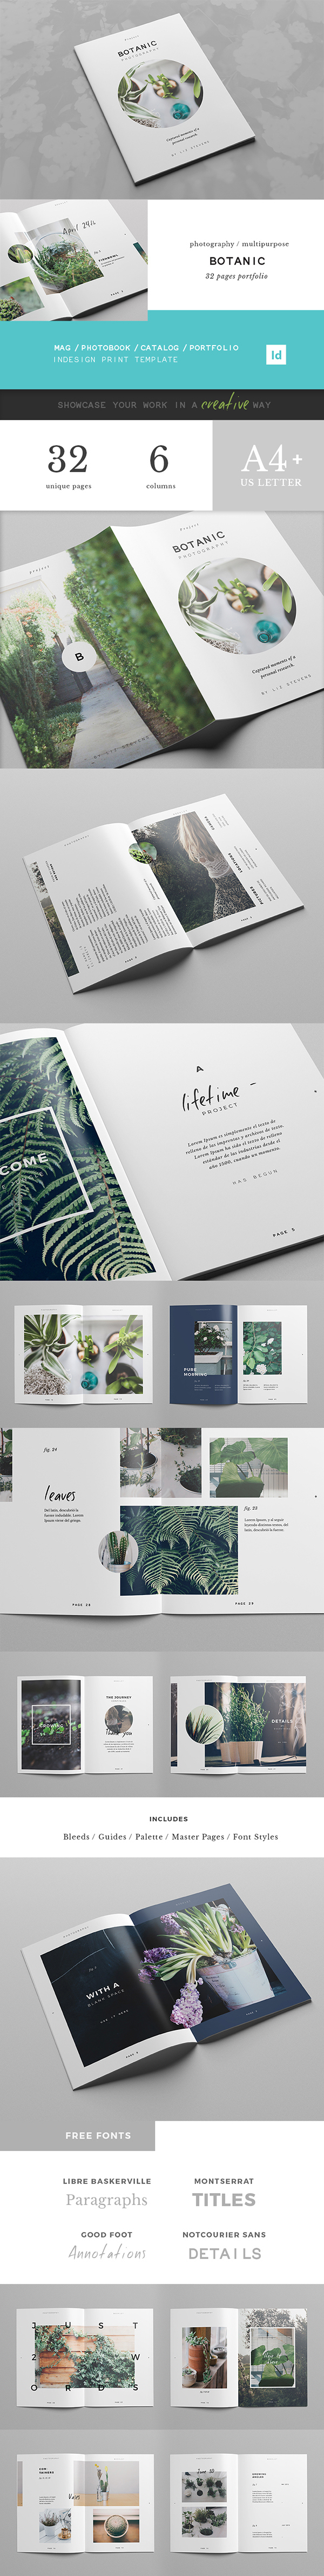 Multipurpose image-based portfolio. It can work perfectly too as a magazine, photo album, brochure or catalog. Style is minimal, delicate, modern and playful with an indie feeling, ideal for photography, design, art or fashion projects. Photos used in the…